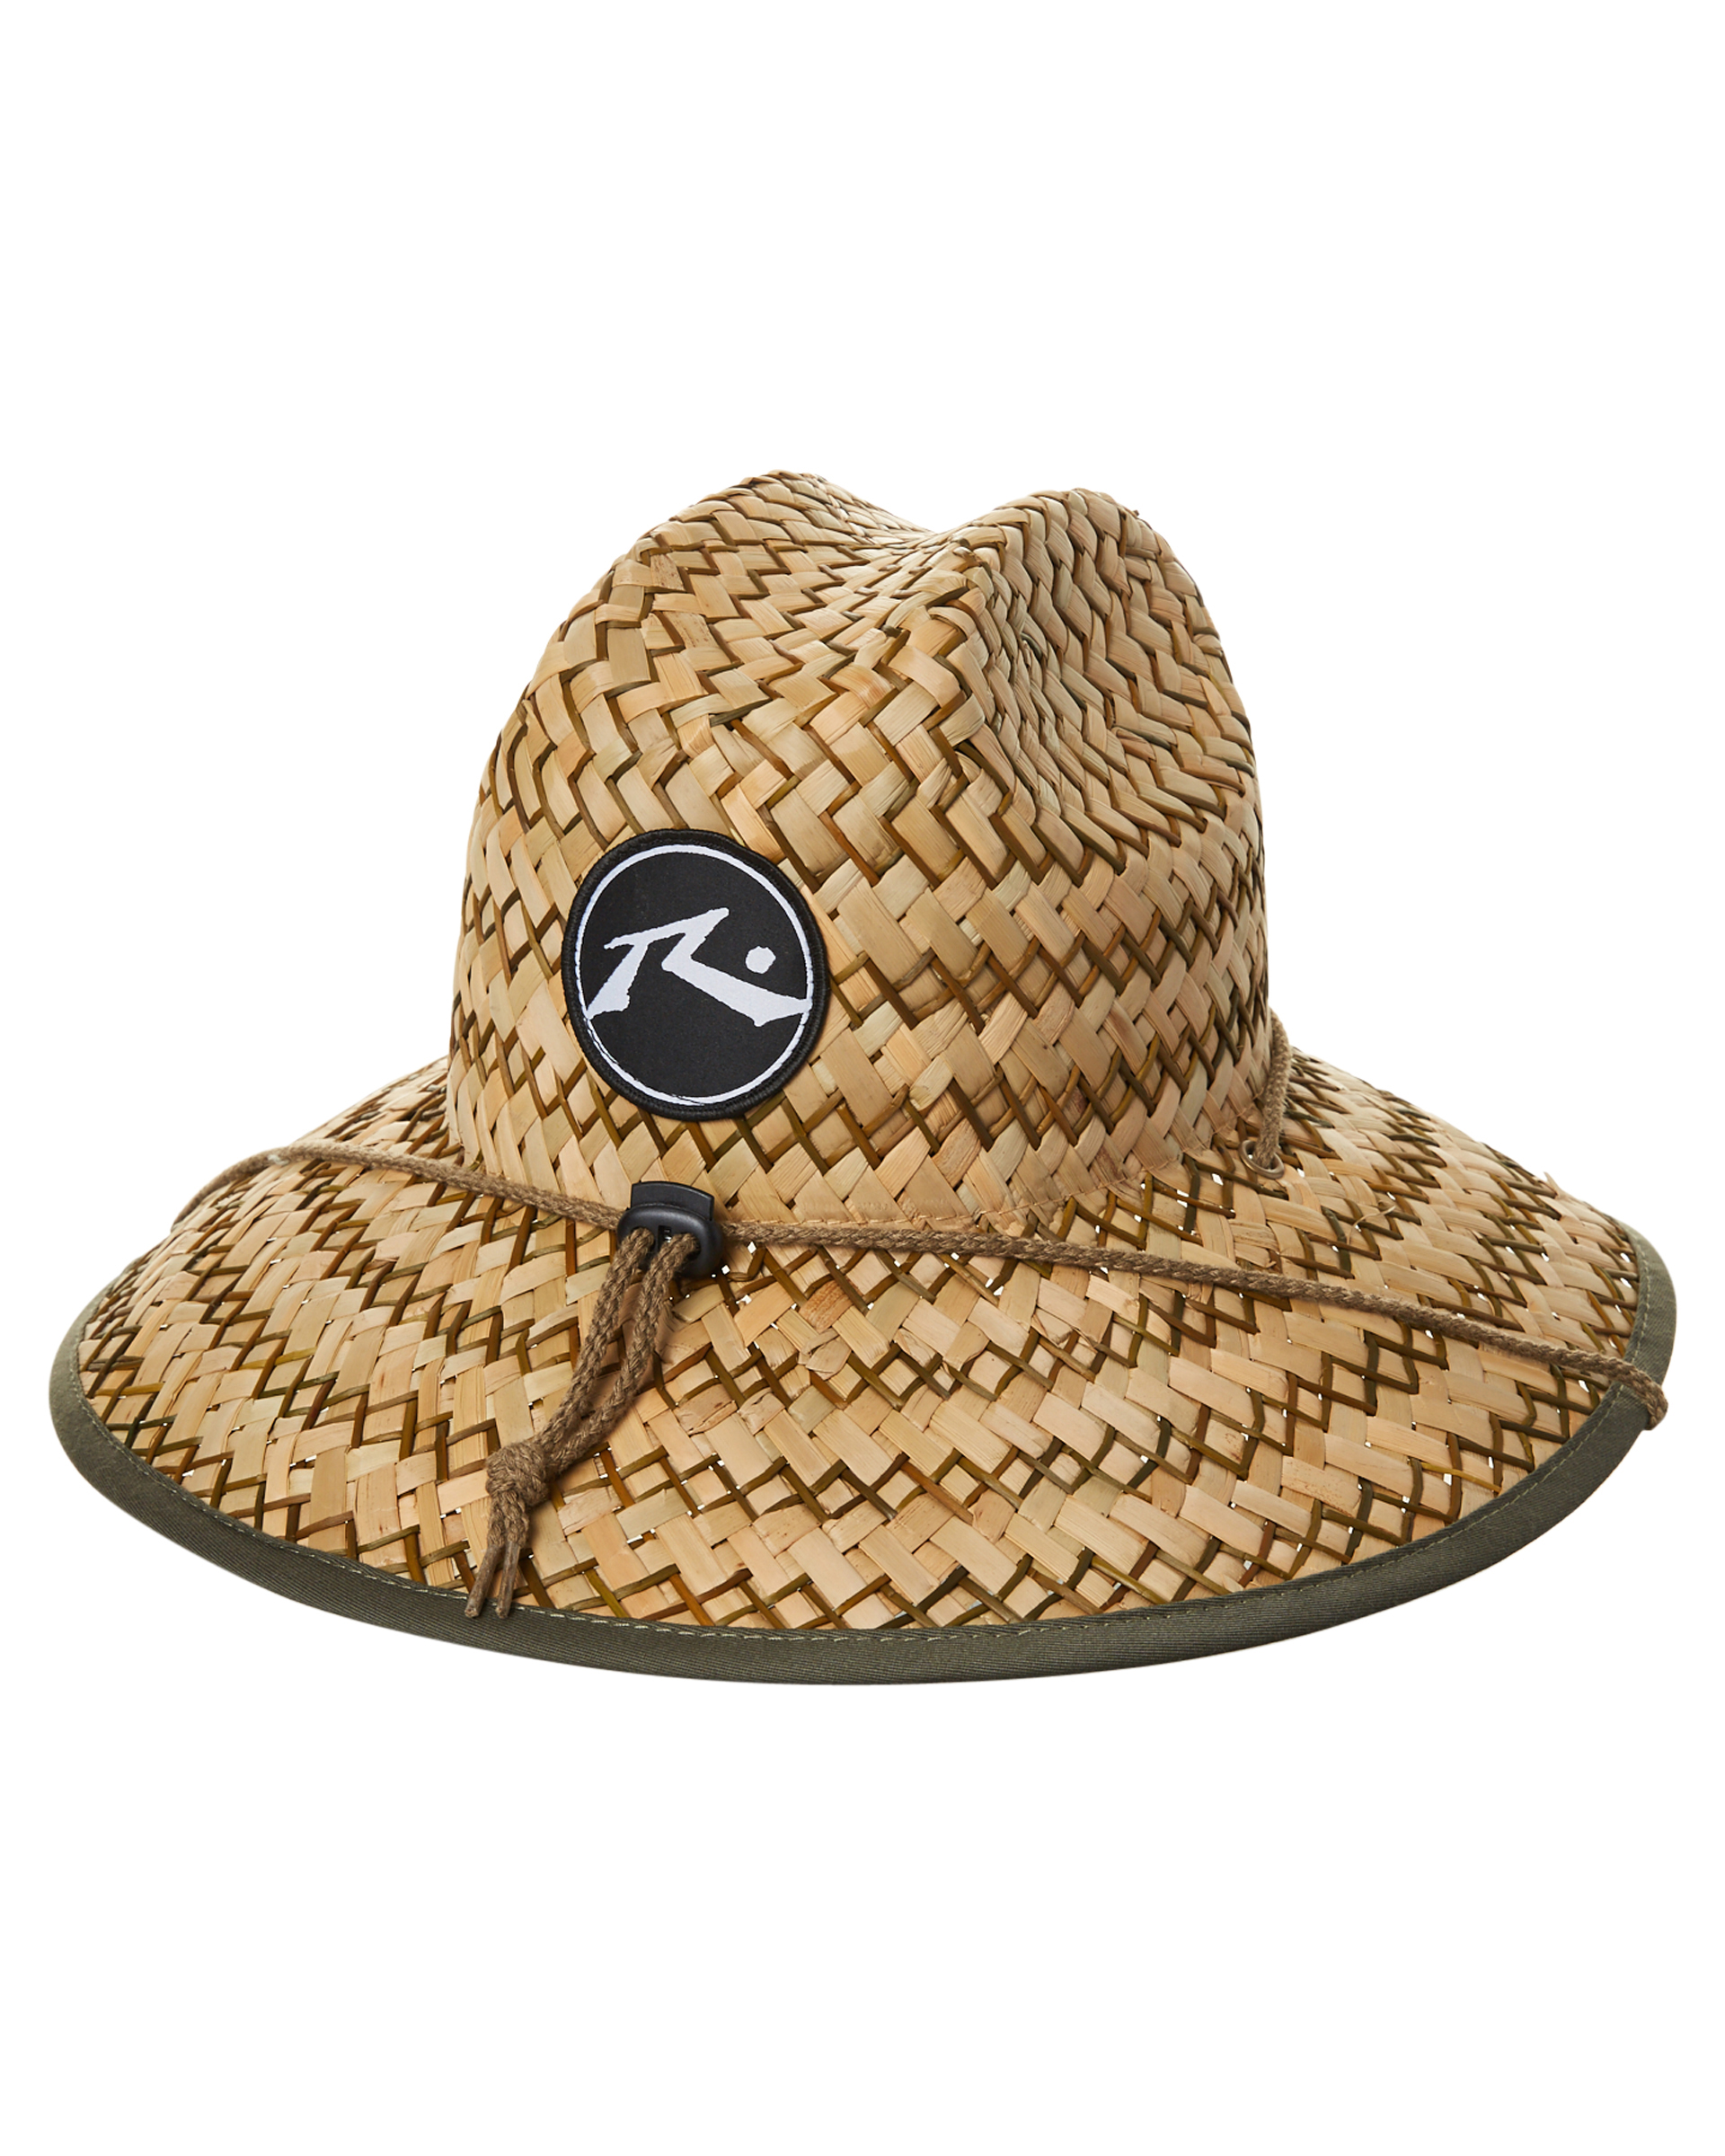 650c4674be6 Sum rusty boony straw weave hat mens headwear blitz surf shop jpg 1920x2400  Straw surf hat